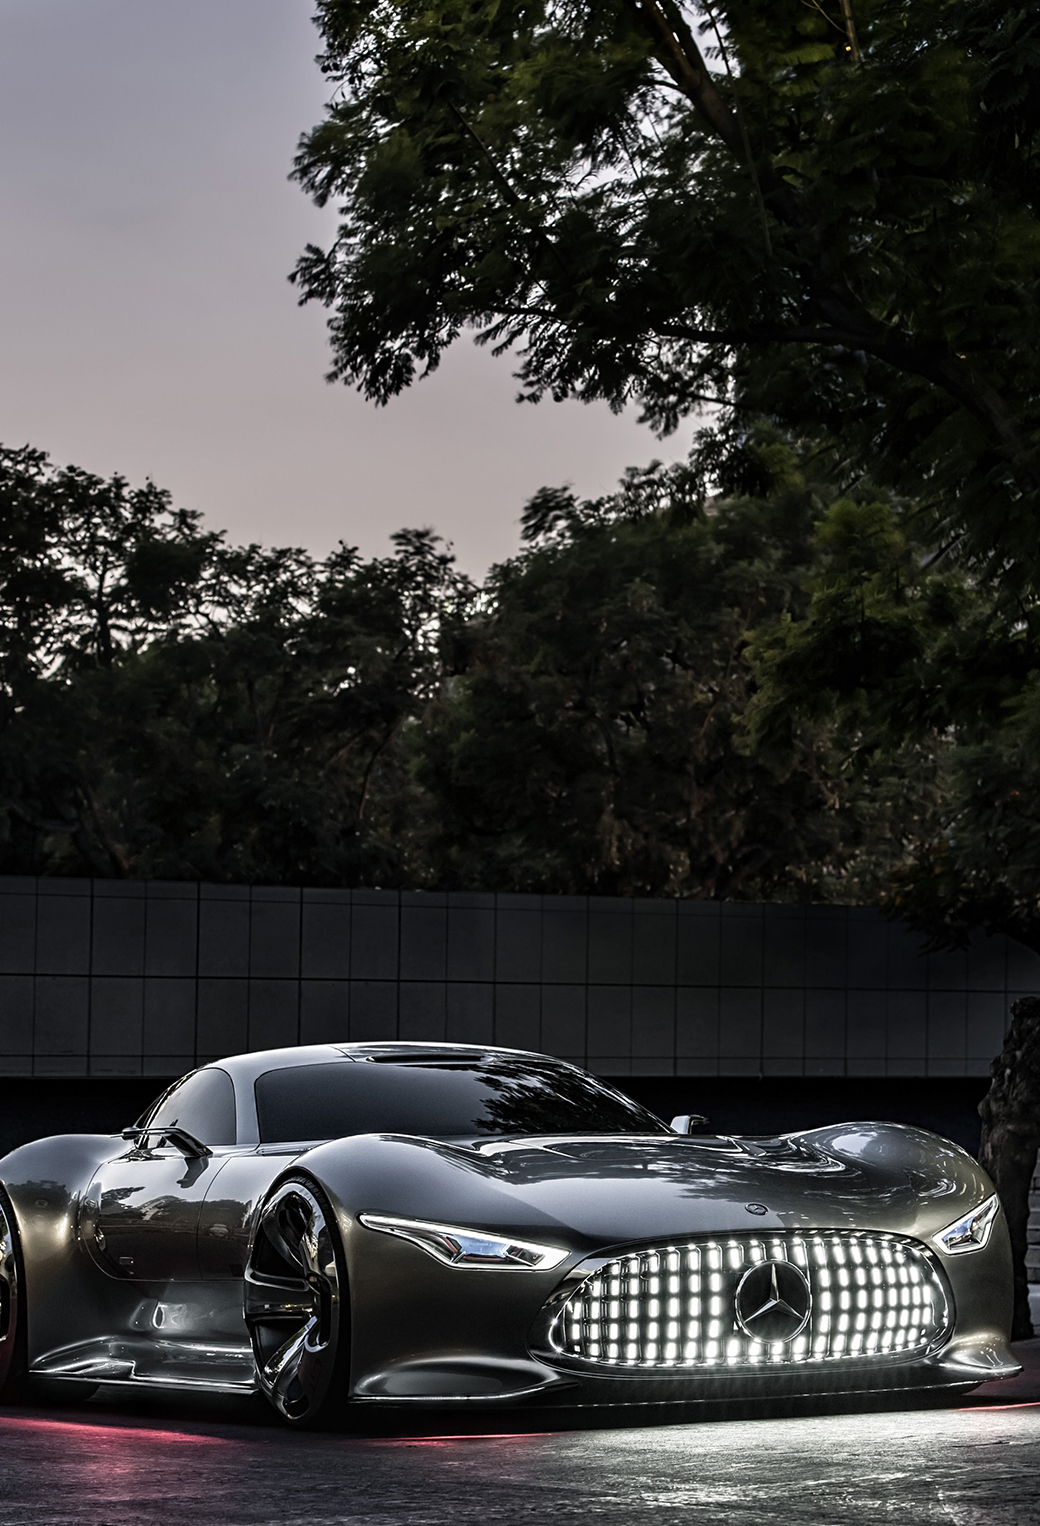 Mercedes Benz AMG Vision3Wallpapers iPhone Parallax Mercedes Benz AMG Vision